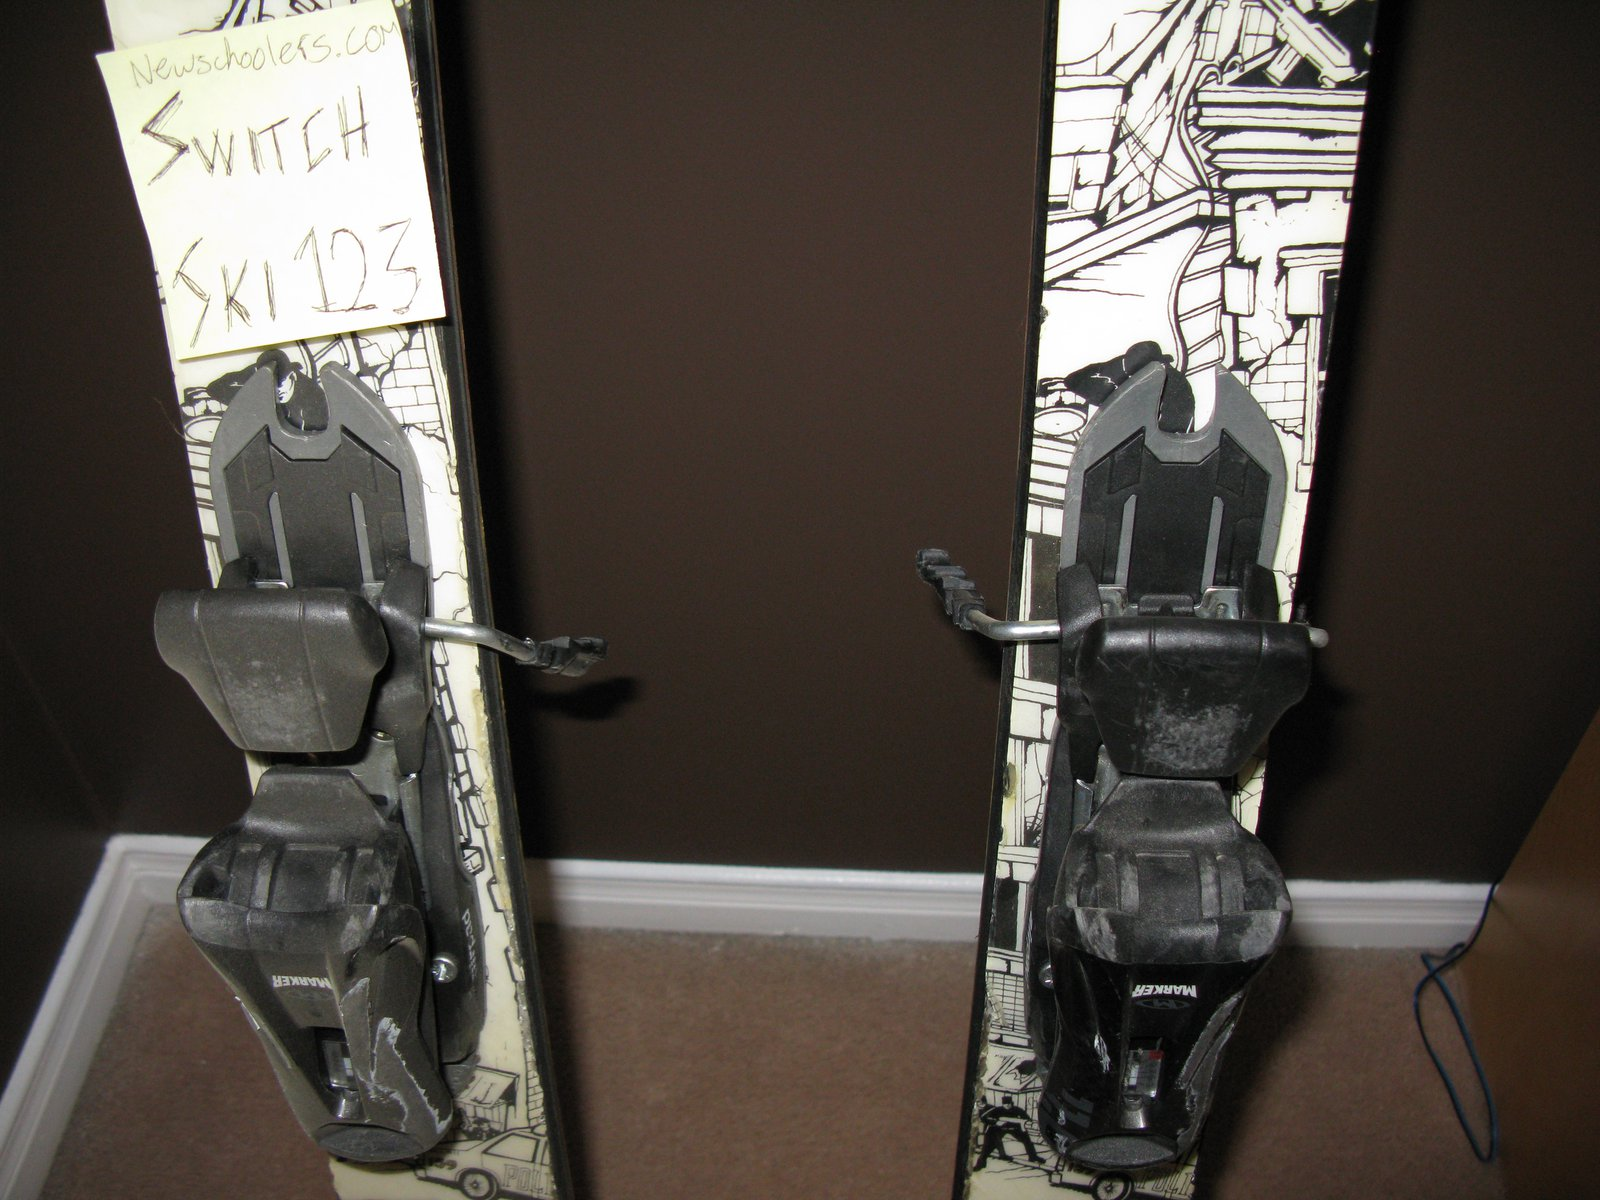 Skis - 8 of 16